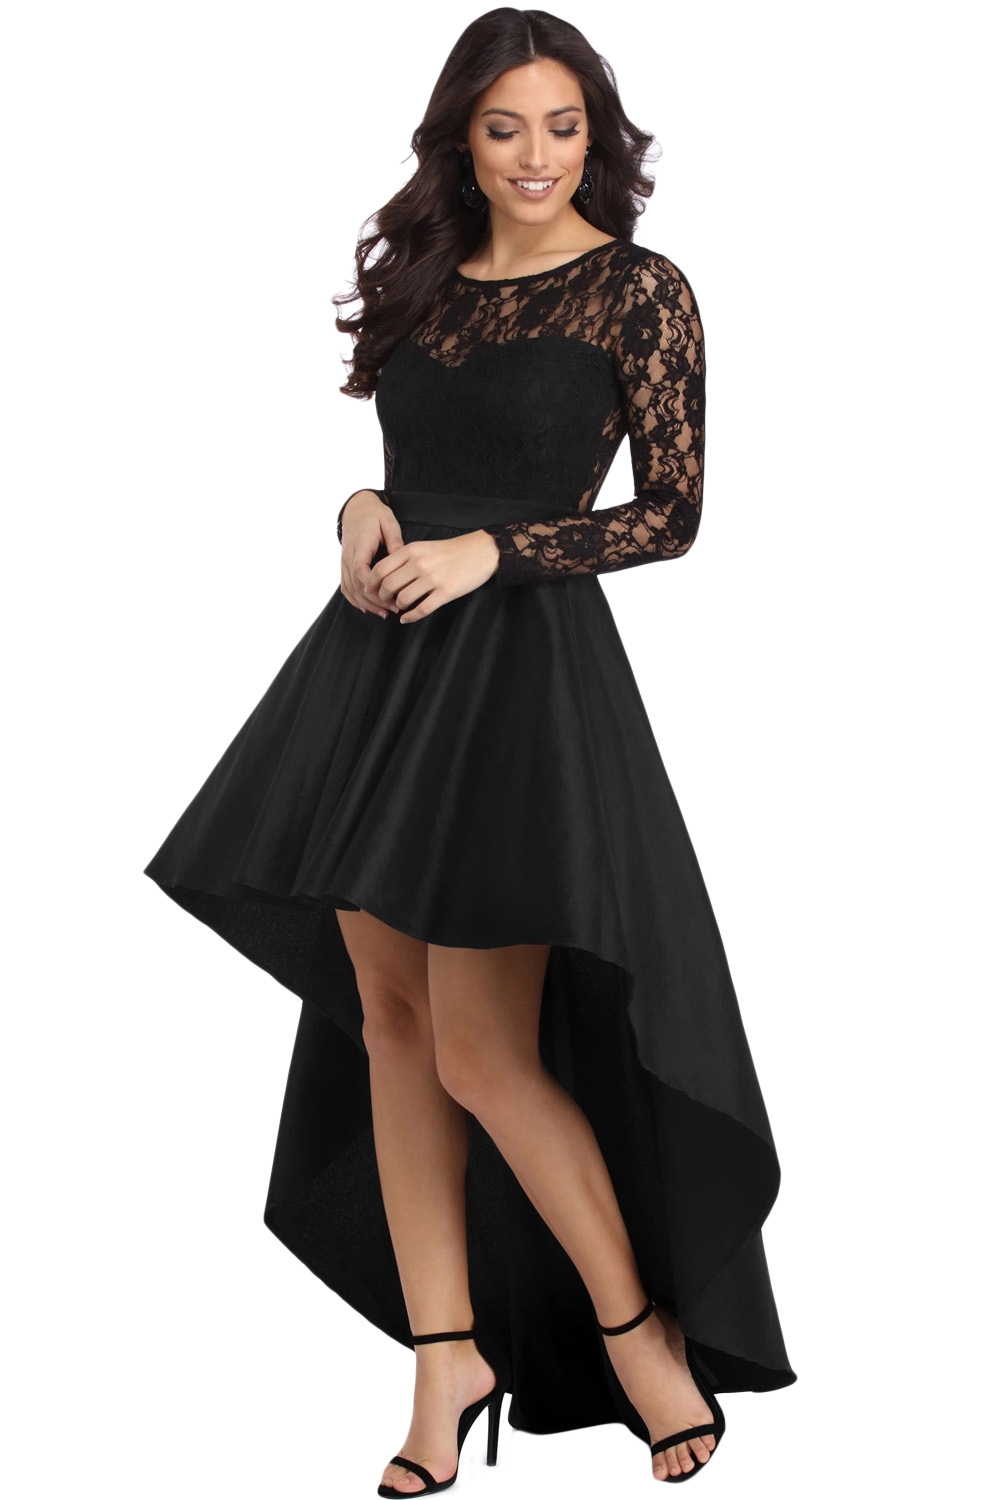 US$26.5 Zkess Black Long Sleeve Lace High Low Satin Prom Dress